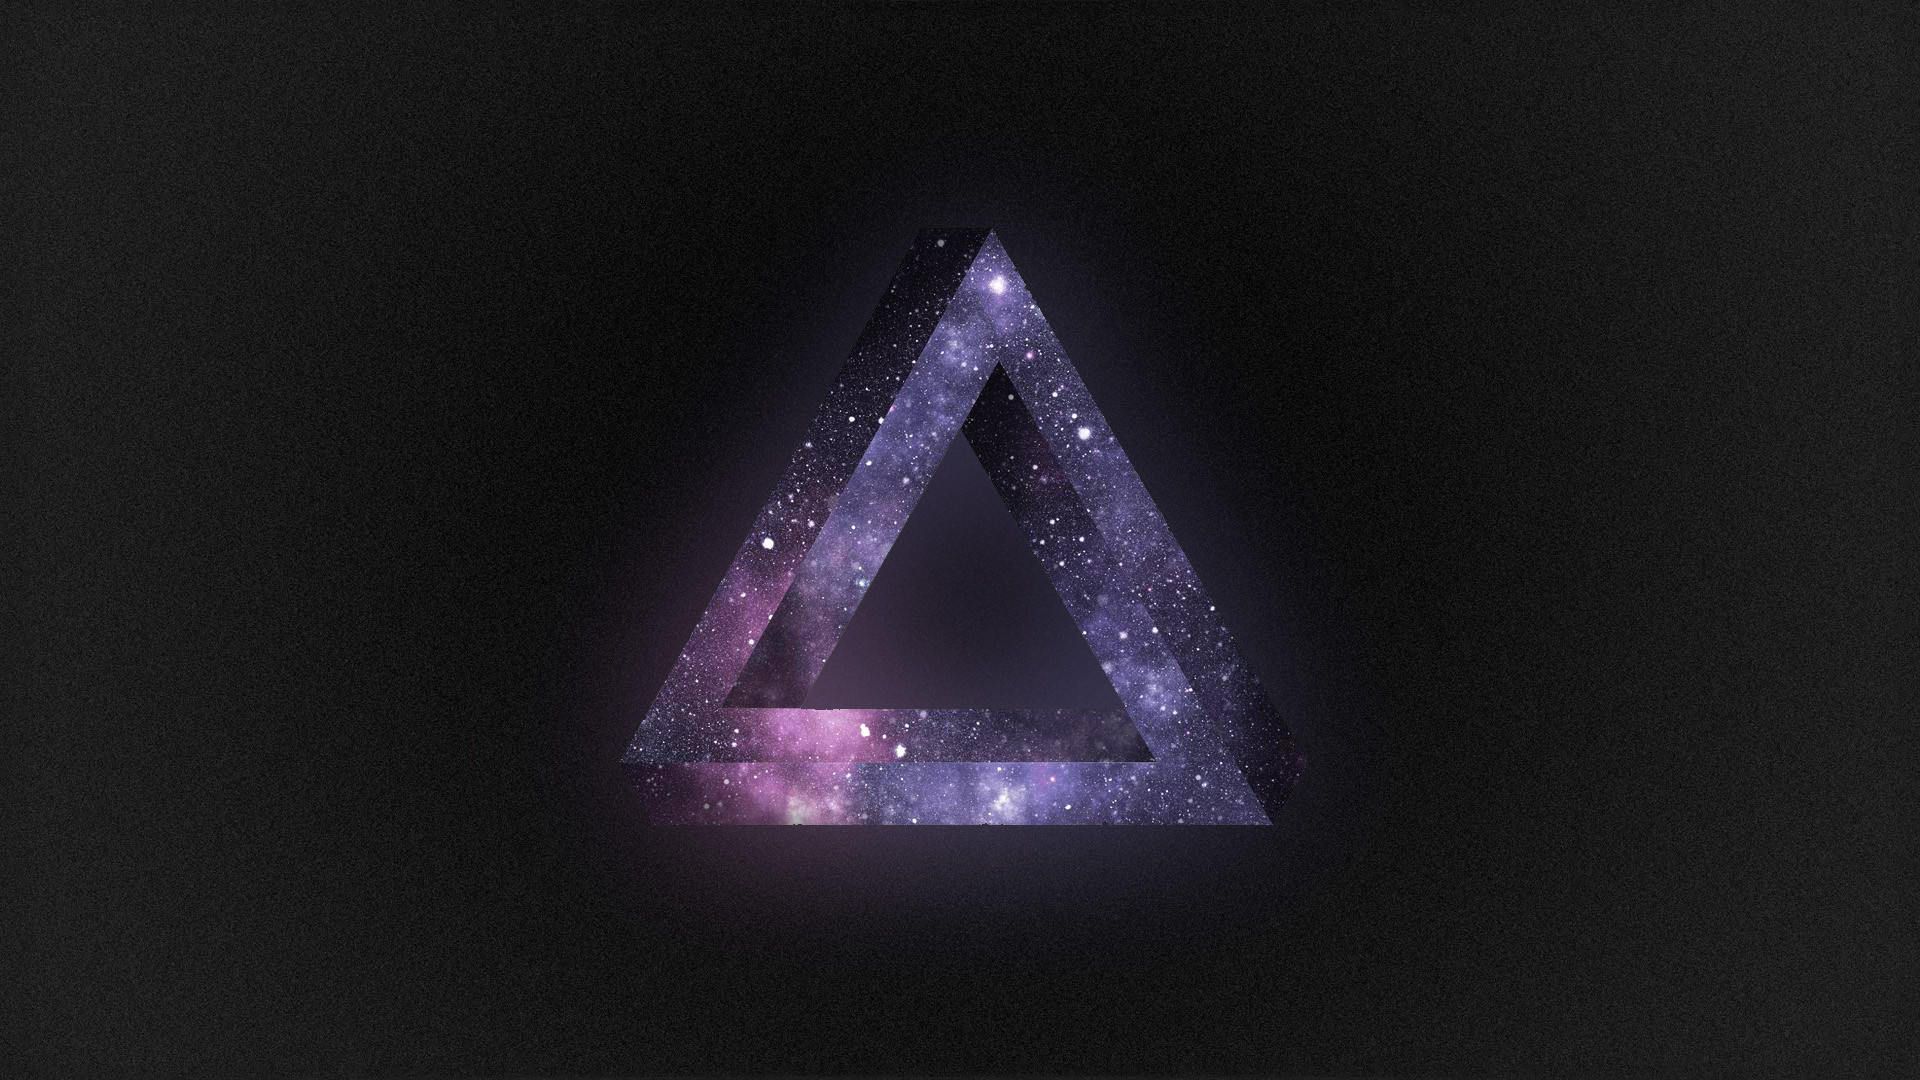 Triangle wallpaper | 1920x1080 | #75418